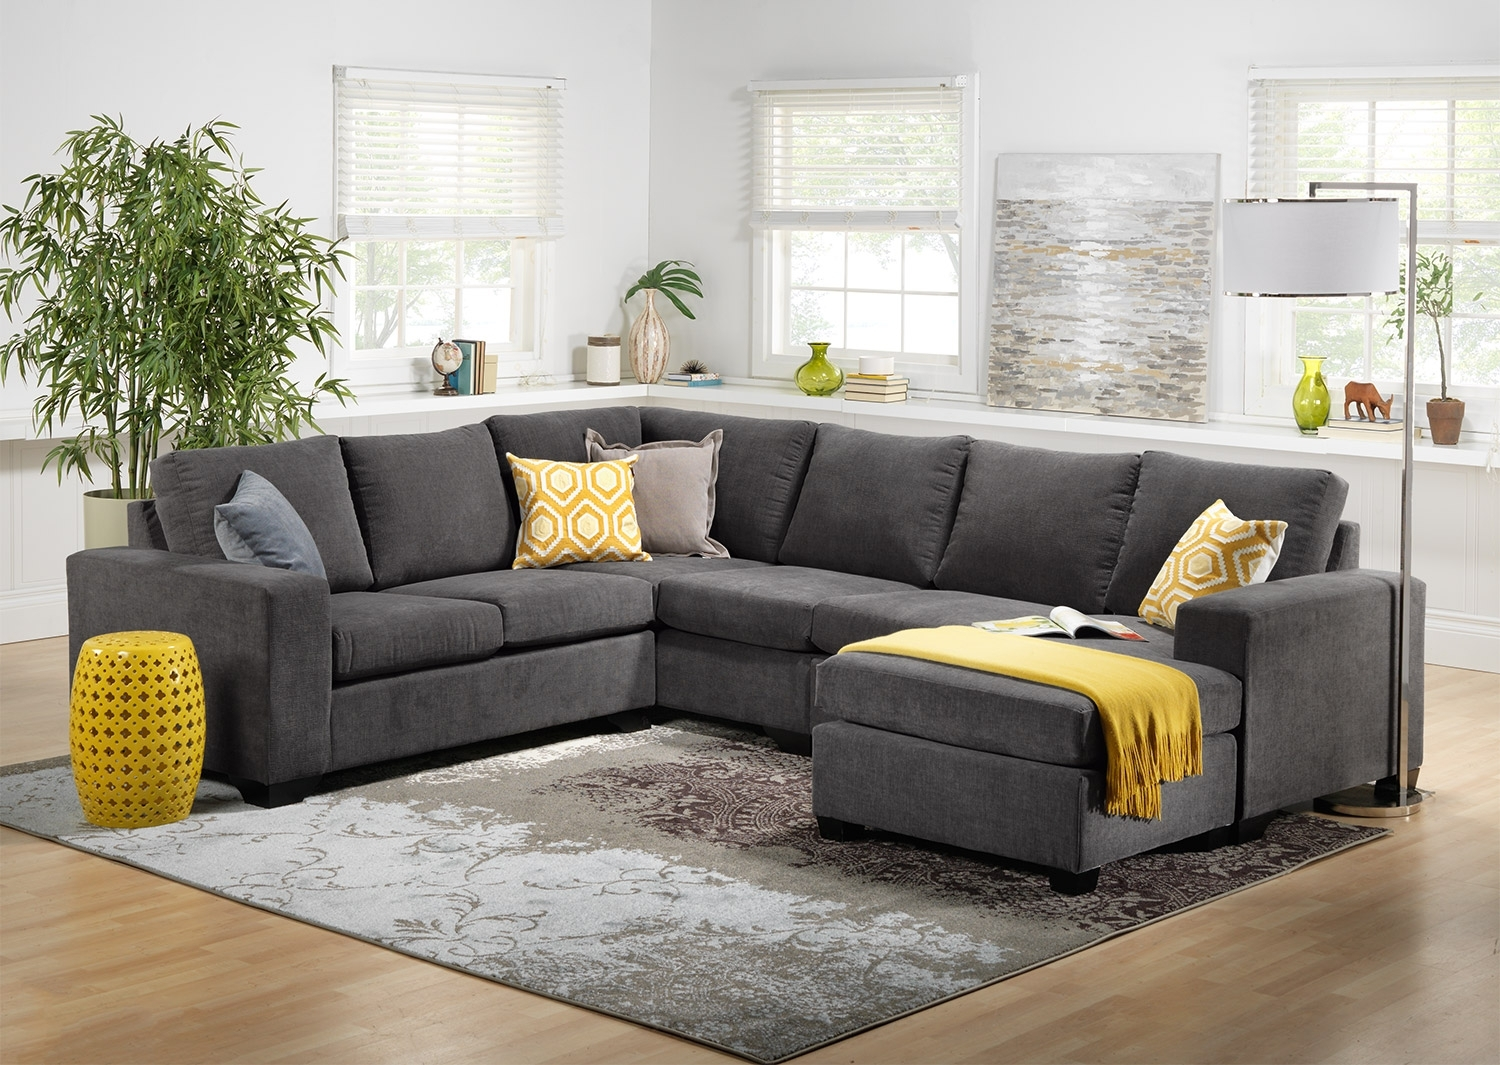 Contemporary Sectional Sofas Canada | Functionalities Inside Sectional Sofas In Canada (View 1 of 10)